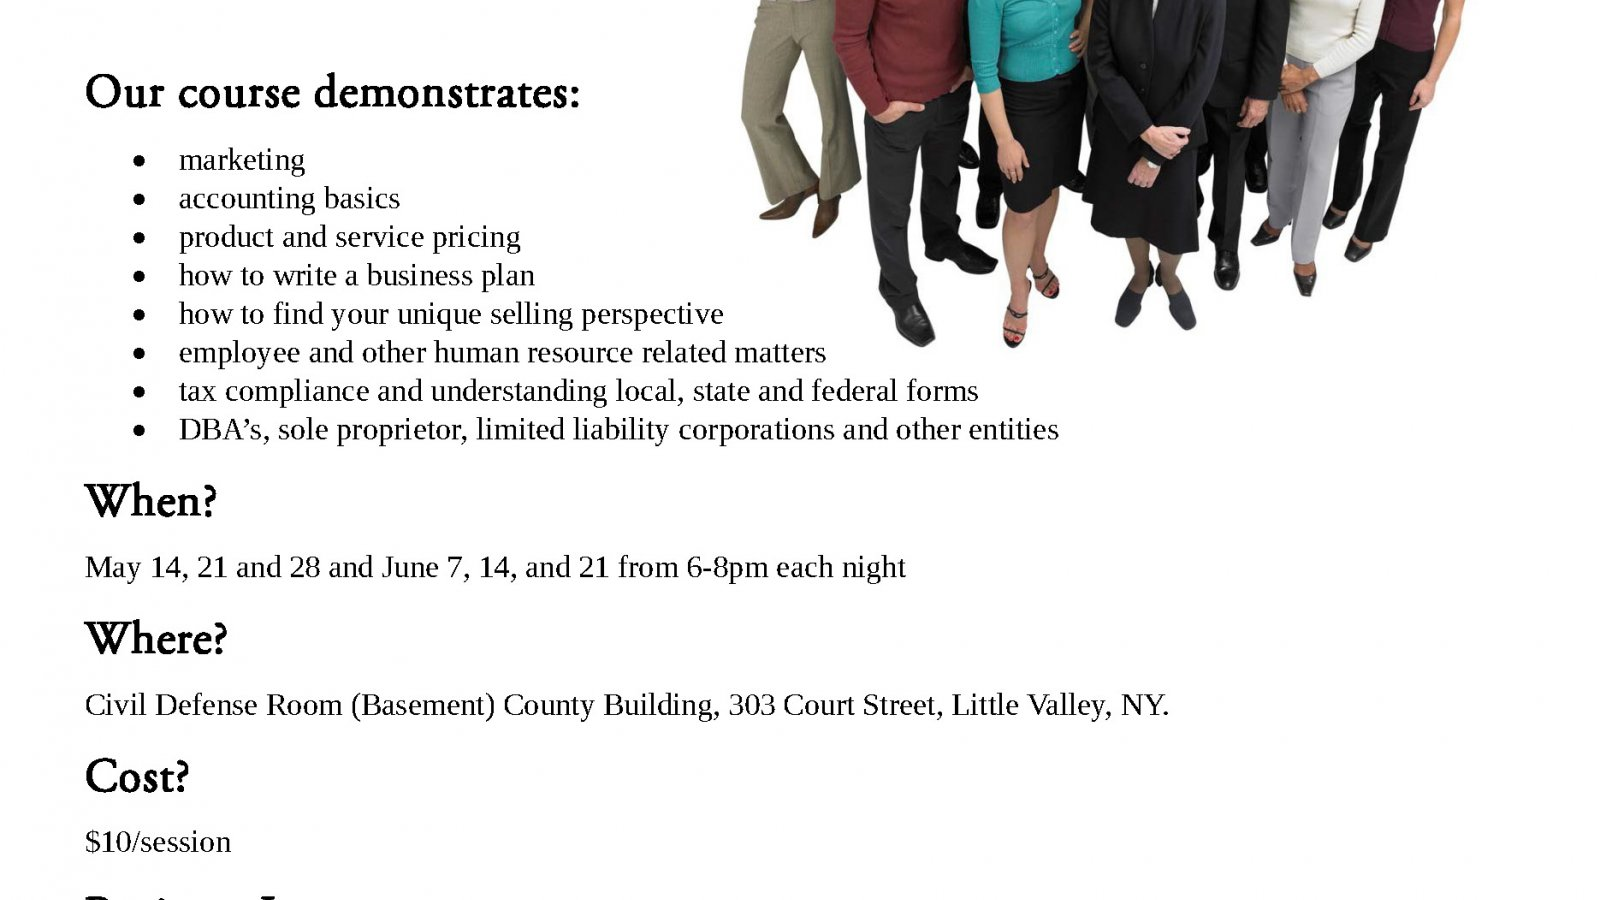 Spring 2014 Business Basics Class in Cattaraugus County